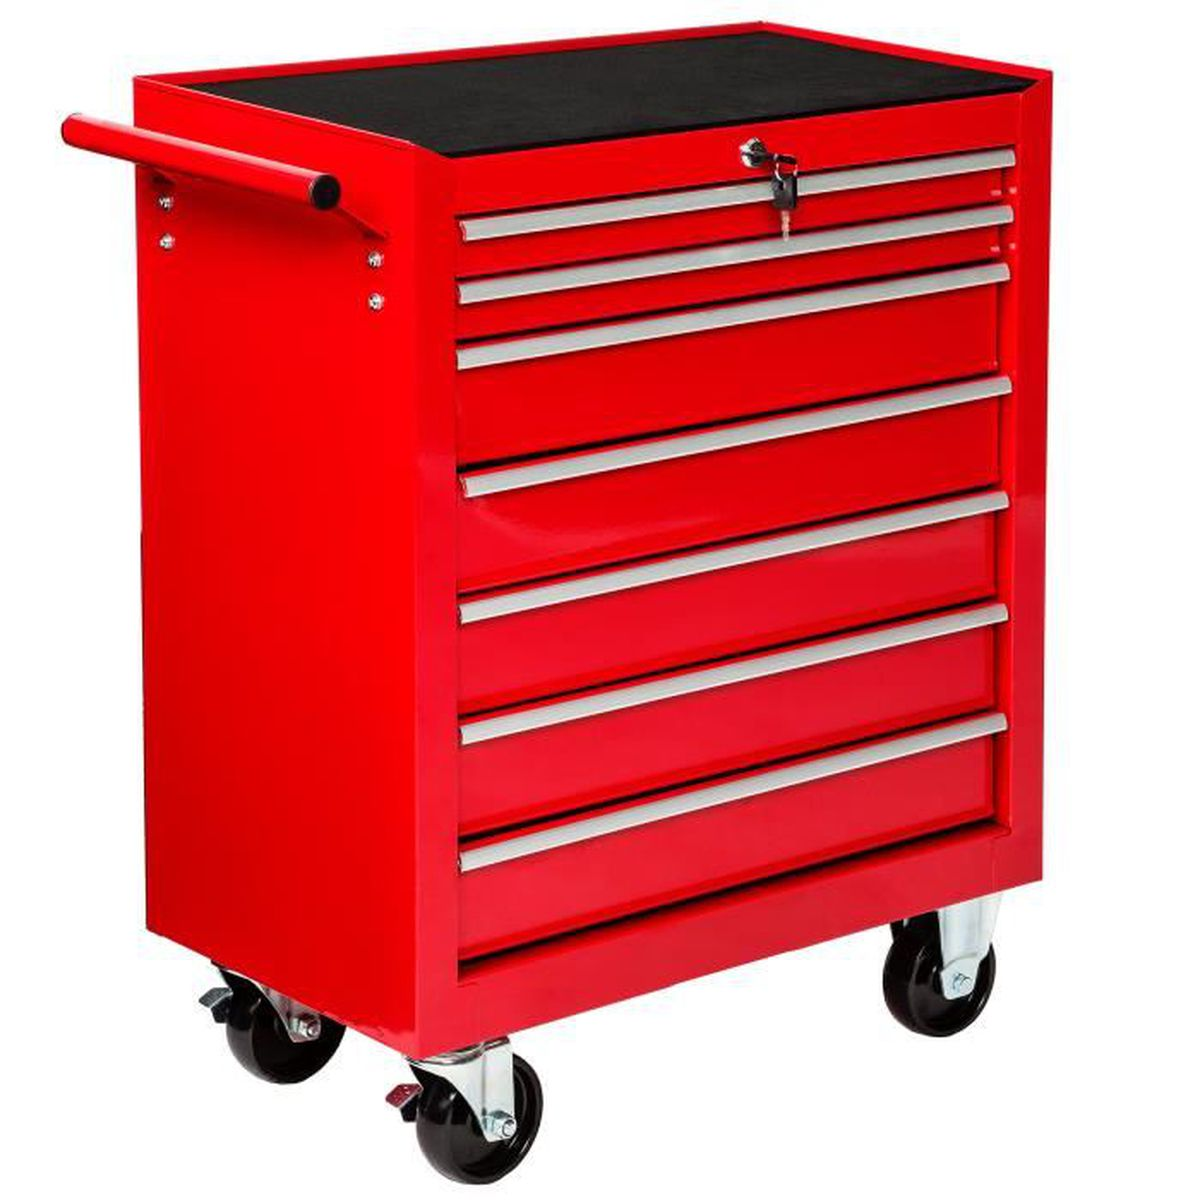 servante d atelier chariot outils avec 7 tiroirs 69 cm x 33 cm x 79 cm rouge tectake achat. Black Bedroom Furniture Sets. Home Design Ideas